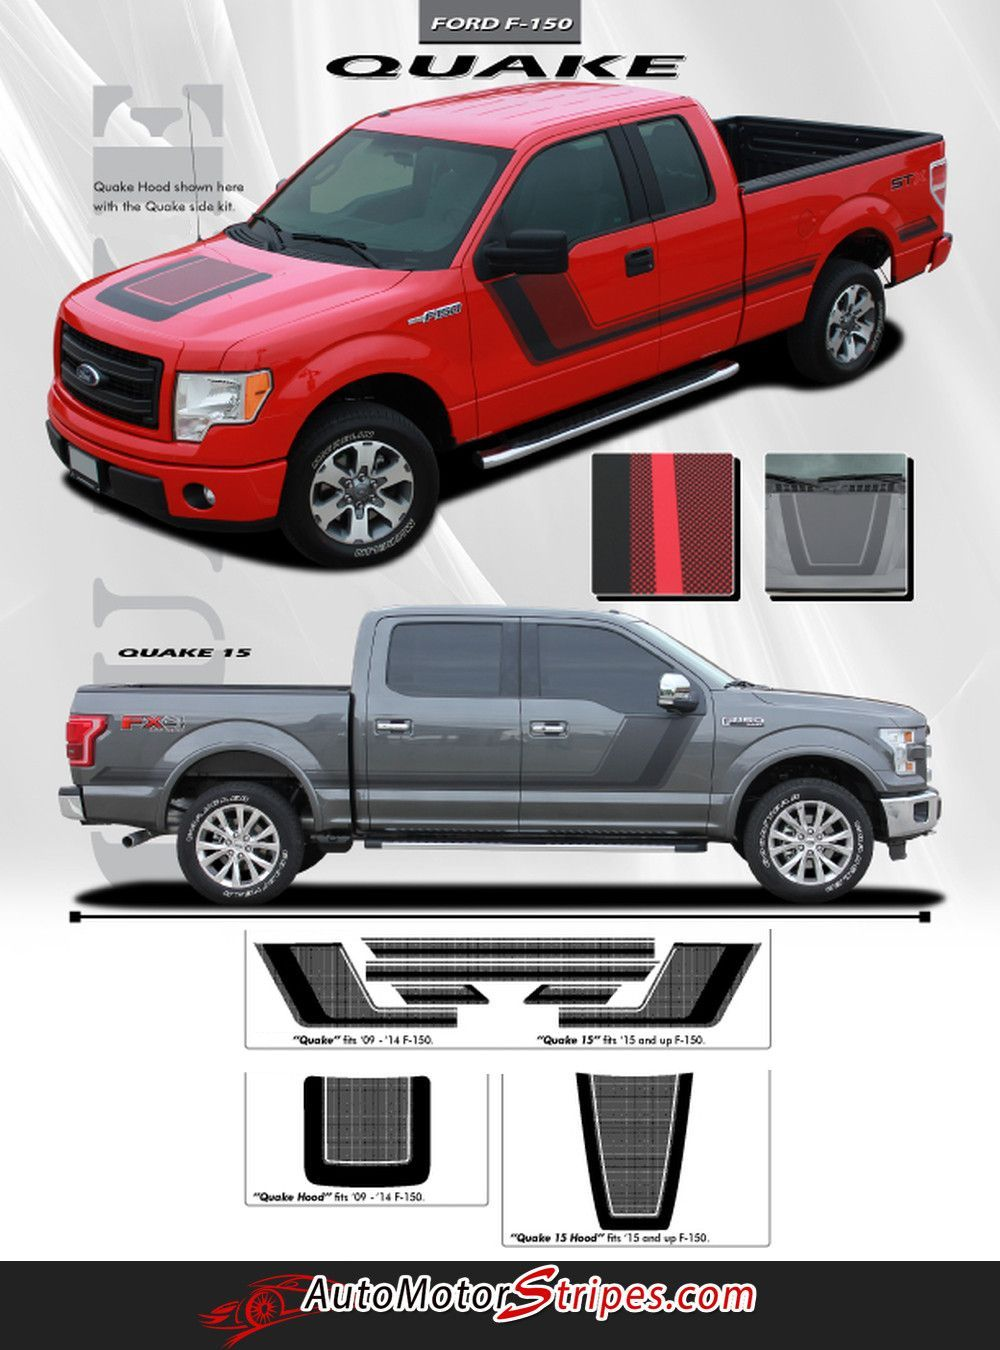 Vehicle specific style ford f 150 series truck quake combo hood and sides tremor fx style vinyl graphic stripe decals year fitment 2009 2010 2011 2012 2013